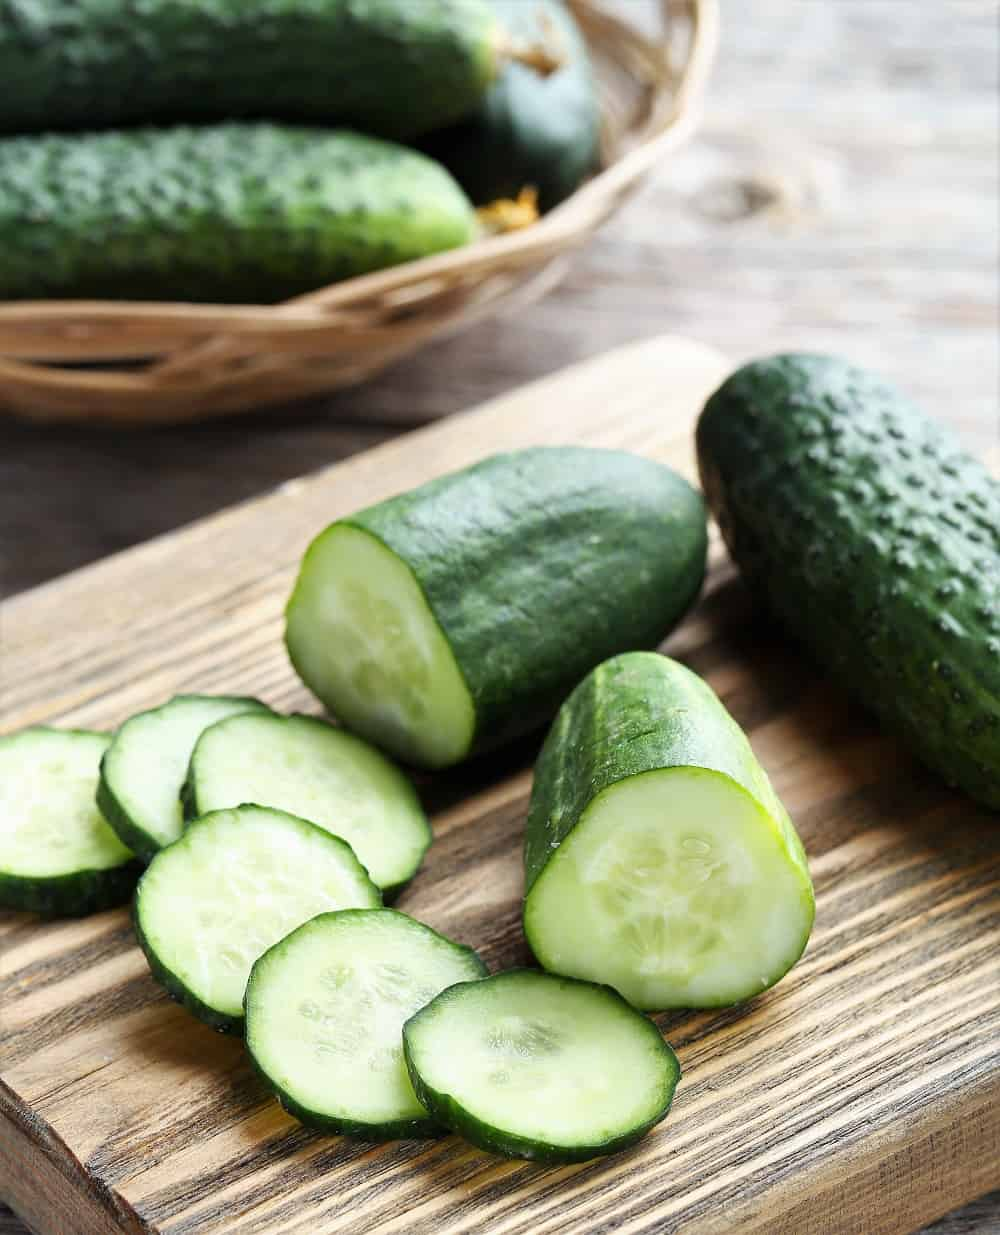 Sliced cucumbers on a board being prepped to make pickles